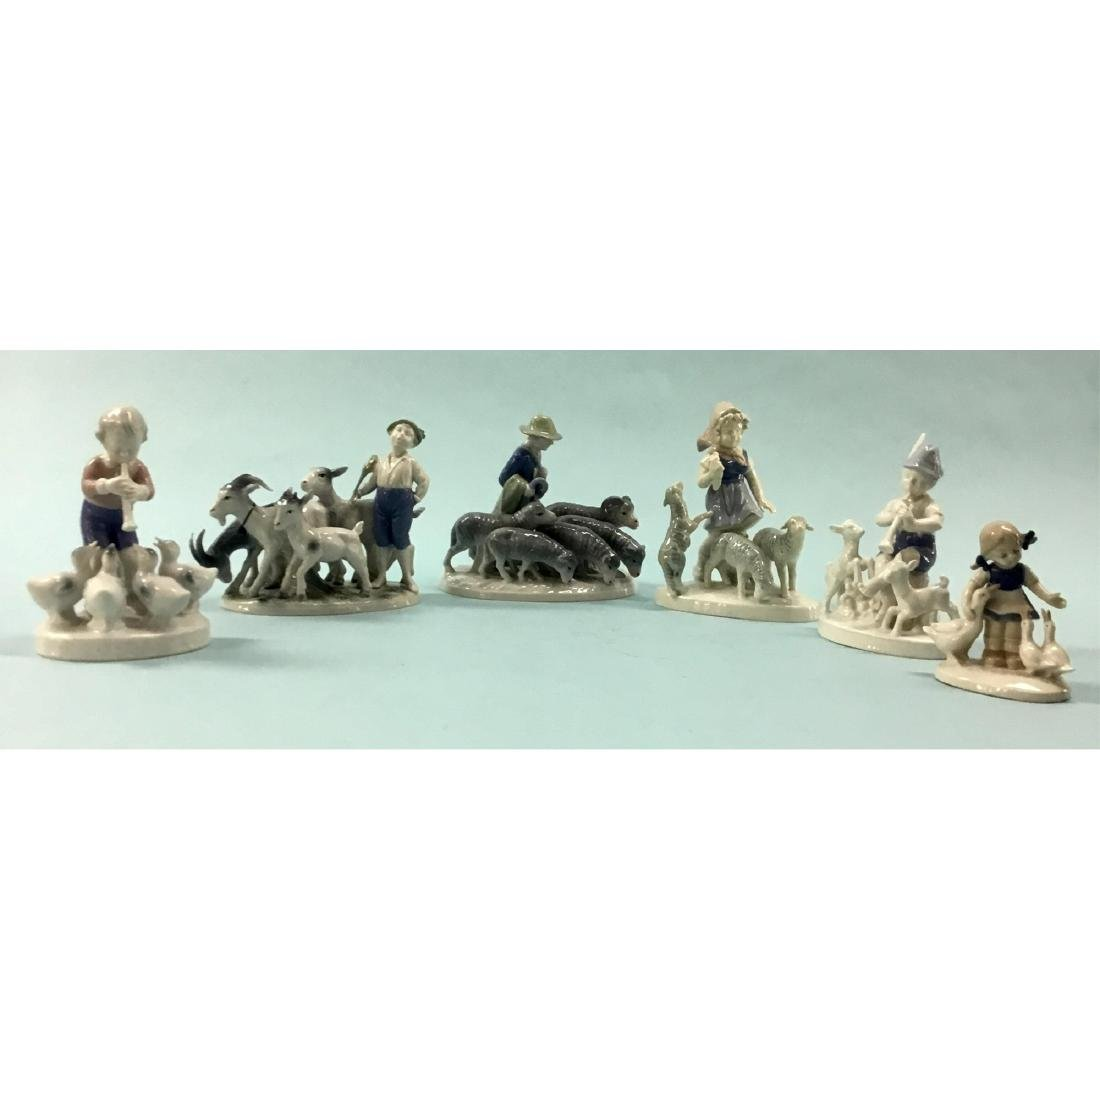 GROUP OF 6 VINTAGE GERMAN GEROLD FIGURINES